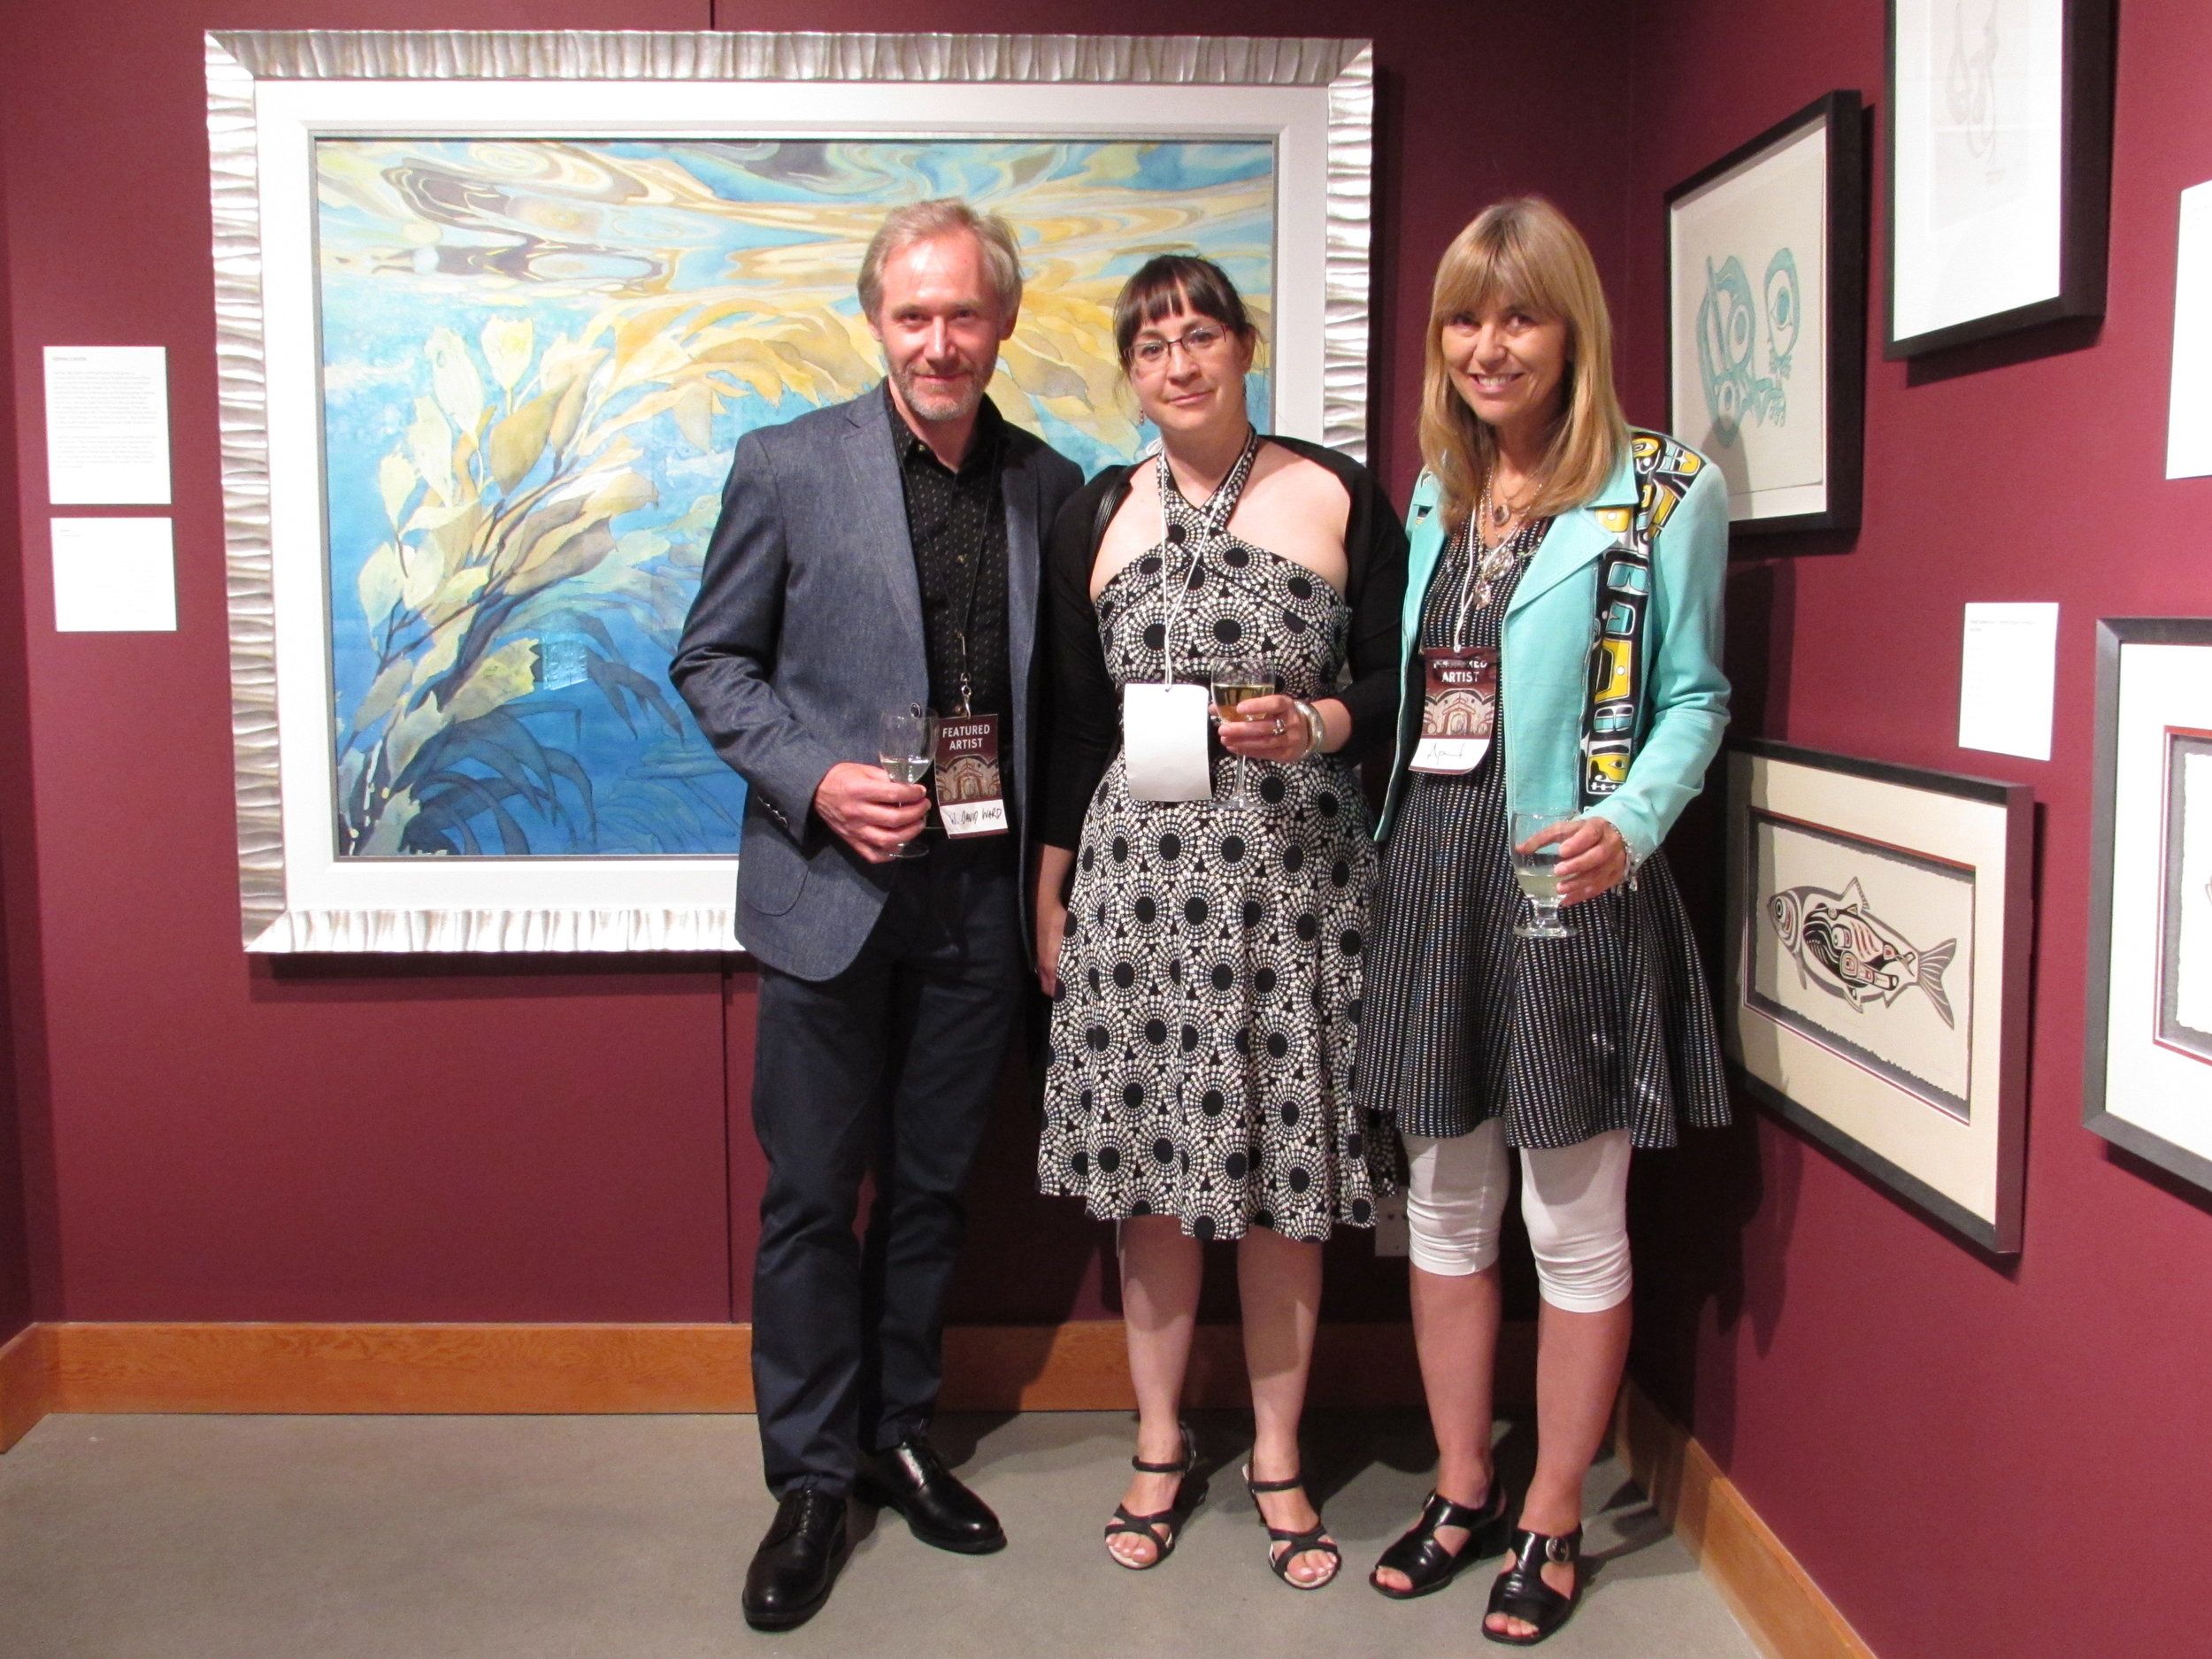 W. David Ward, Sophie Lavoie, and April SGaana Jaad White